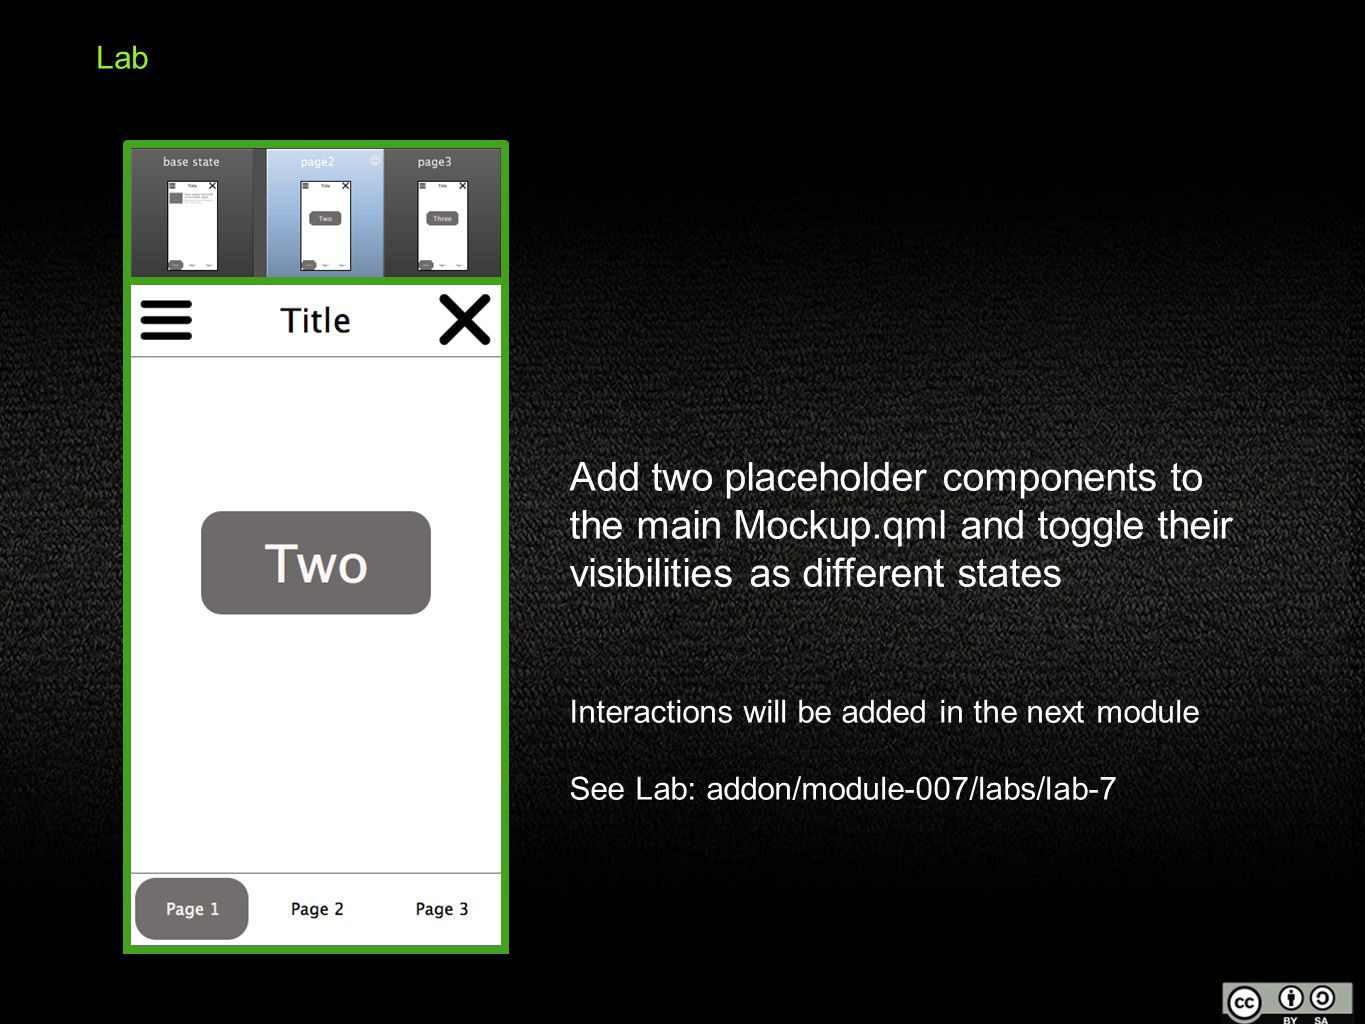 Lab Add two placeholder components to the main Mockup.qml and toggle their visibilities as different states Interactions will be added in the next module See Lab: addon/module-007/labs/lab-7